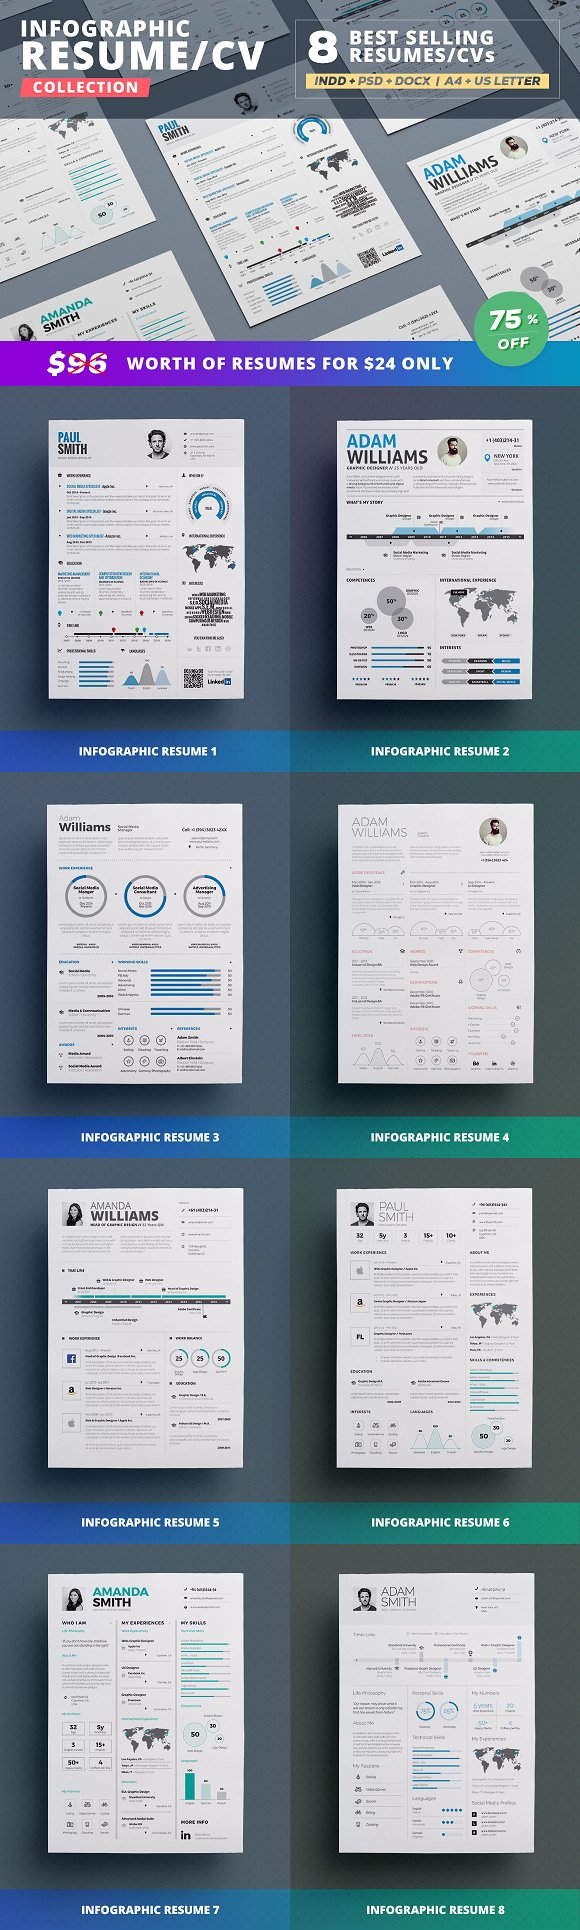 Infographic template for resume